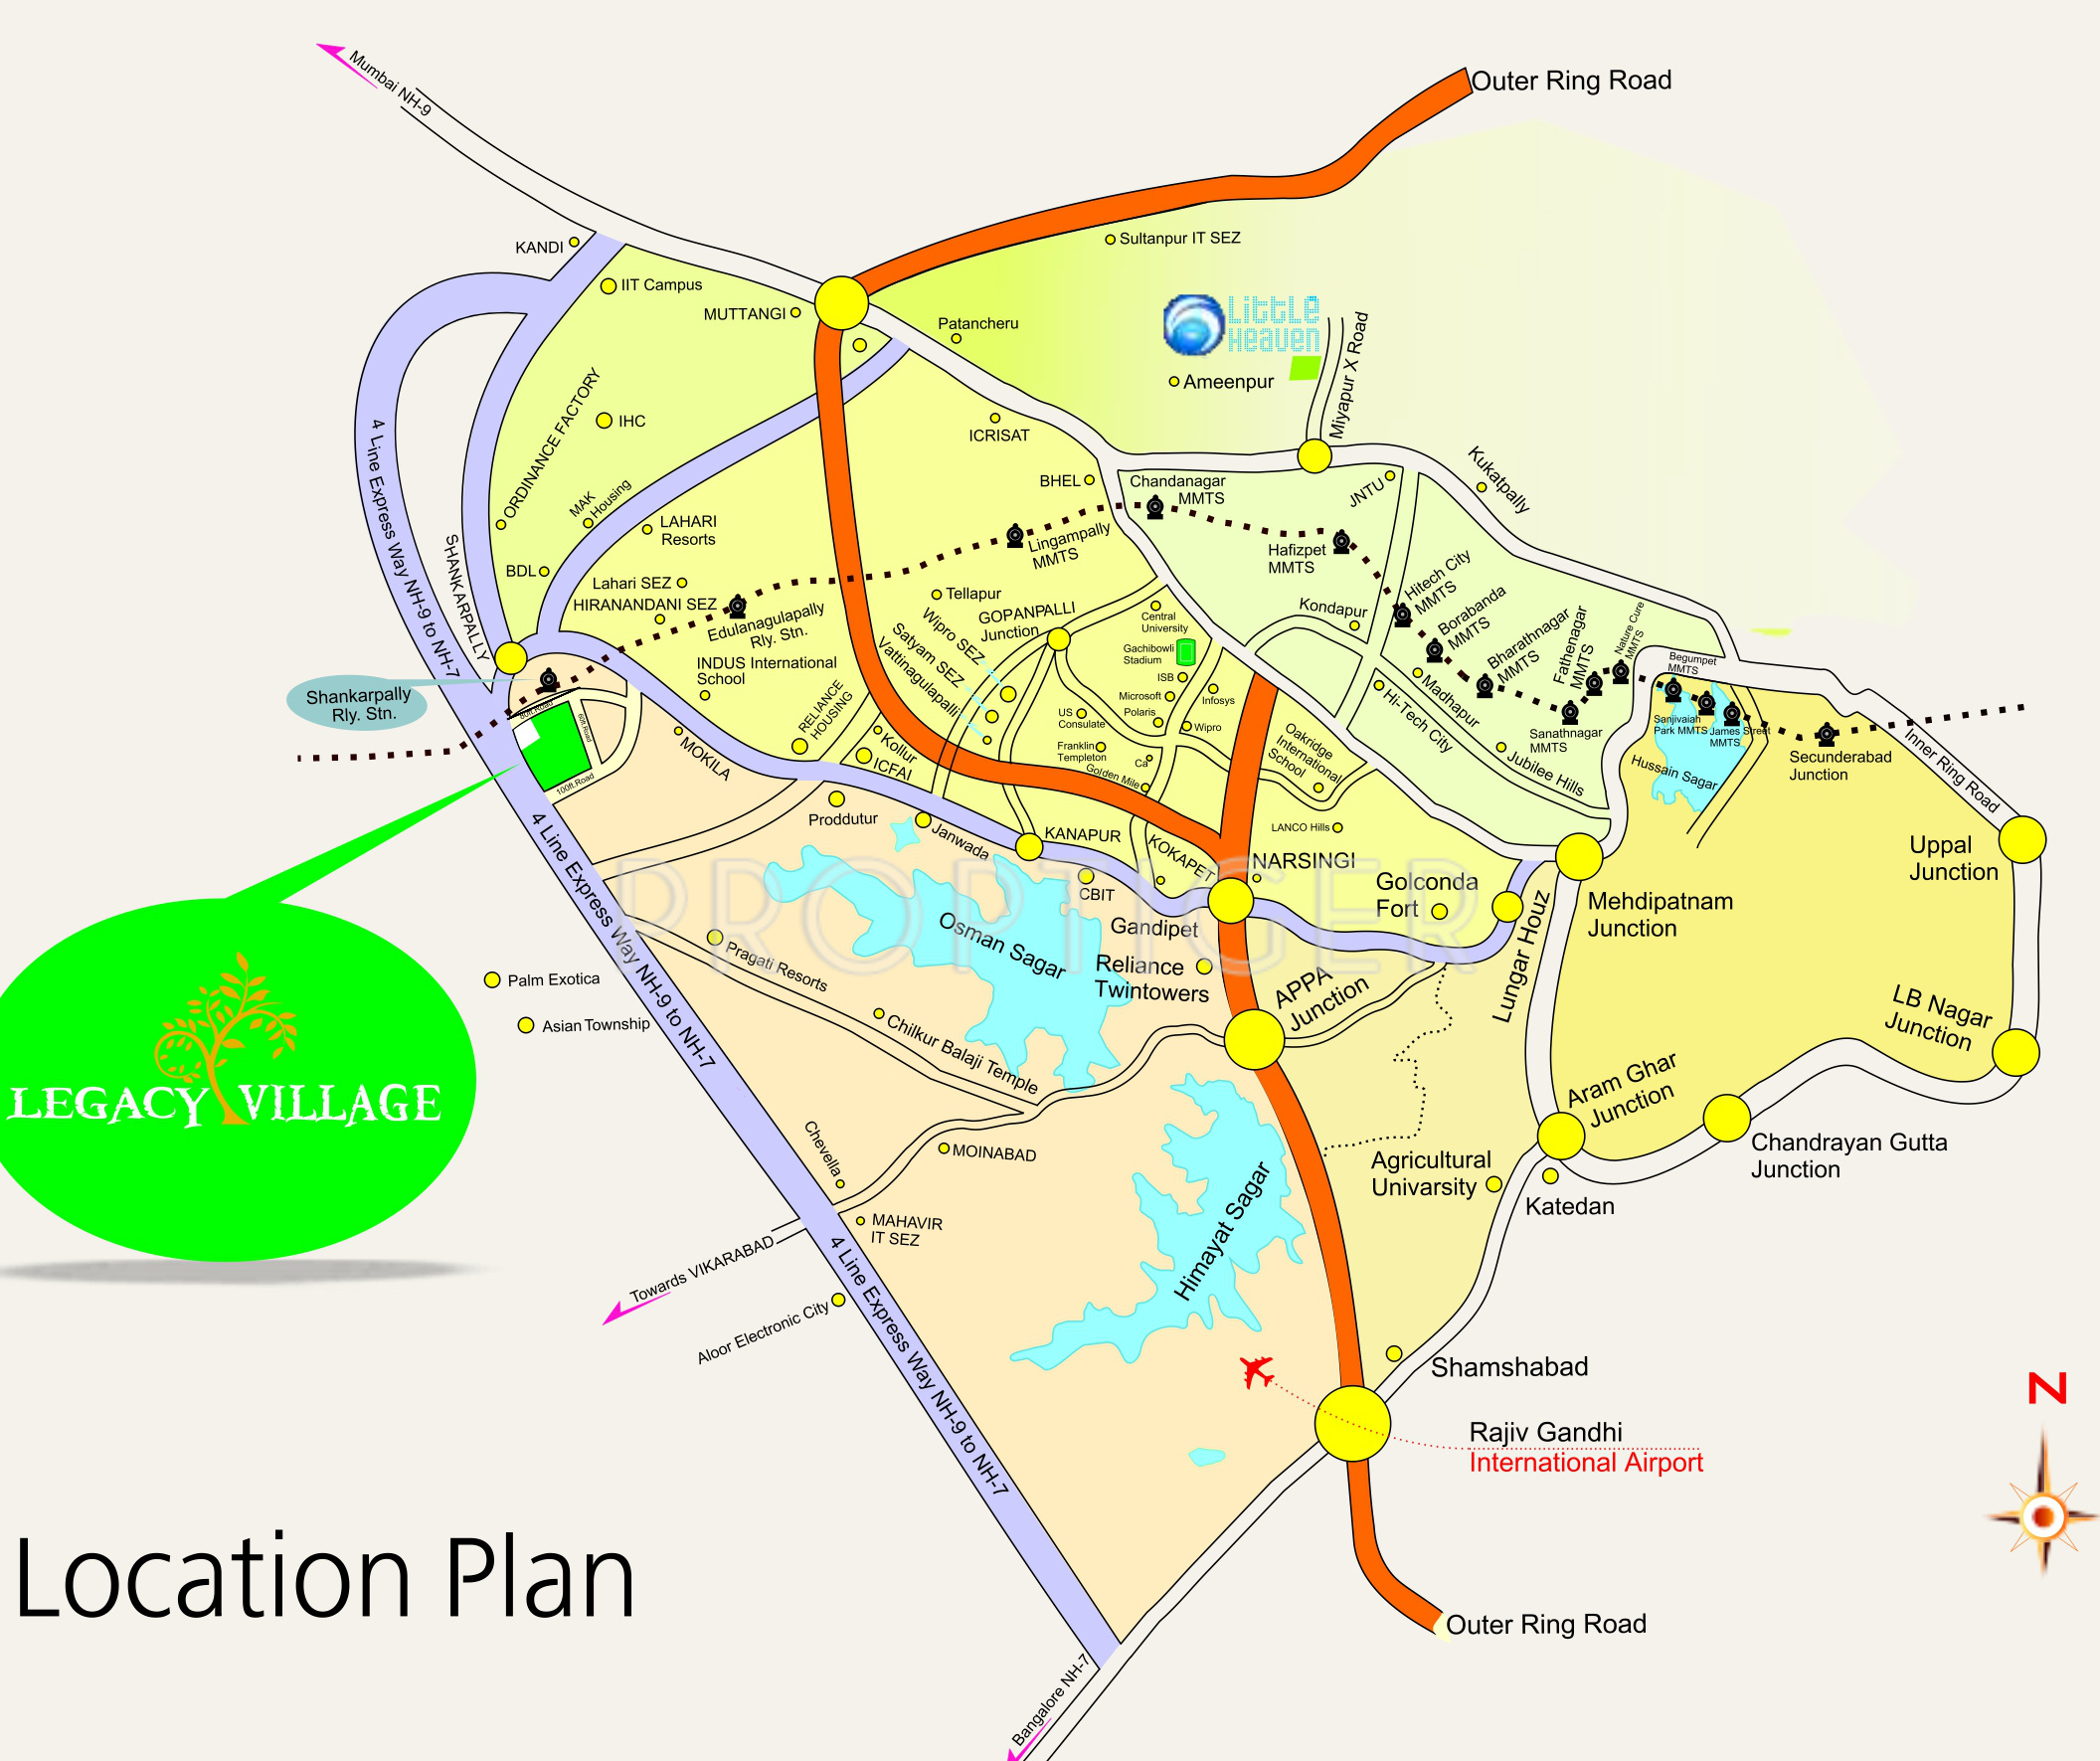 3645 Sq Ft Plot For Sale In M3v Jubilee Legacy Village